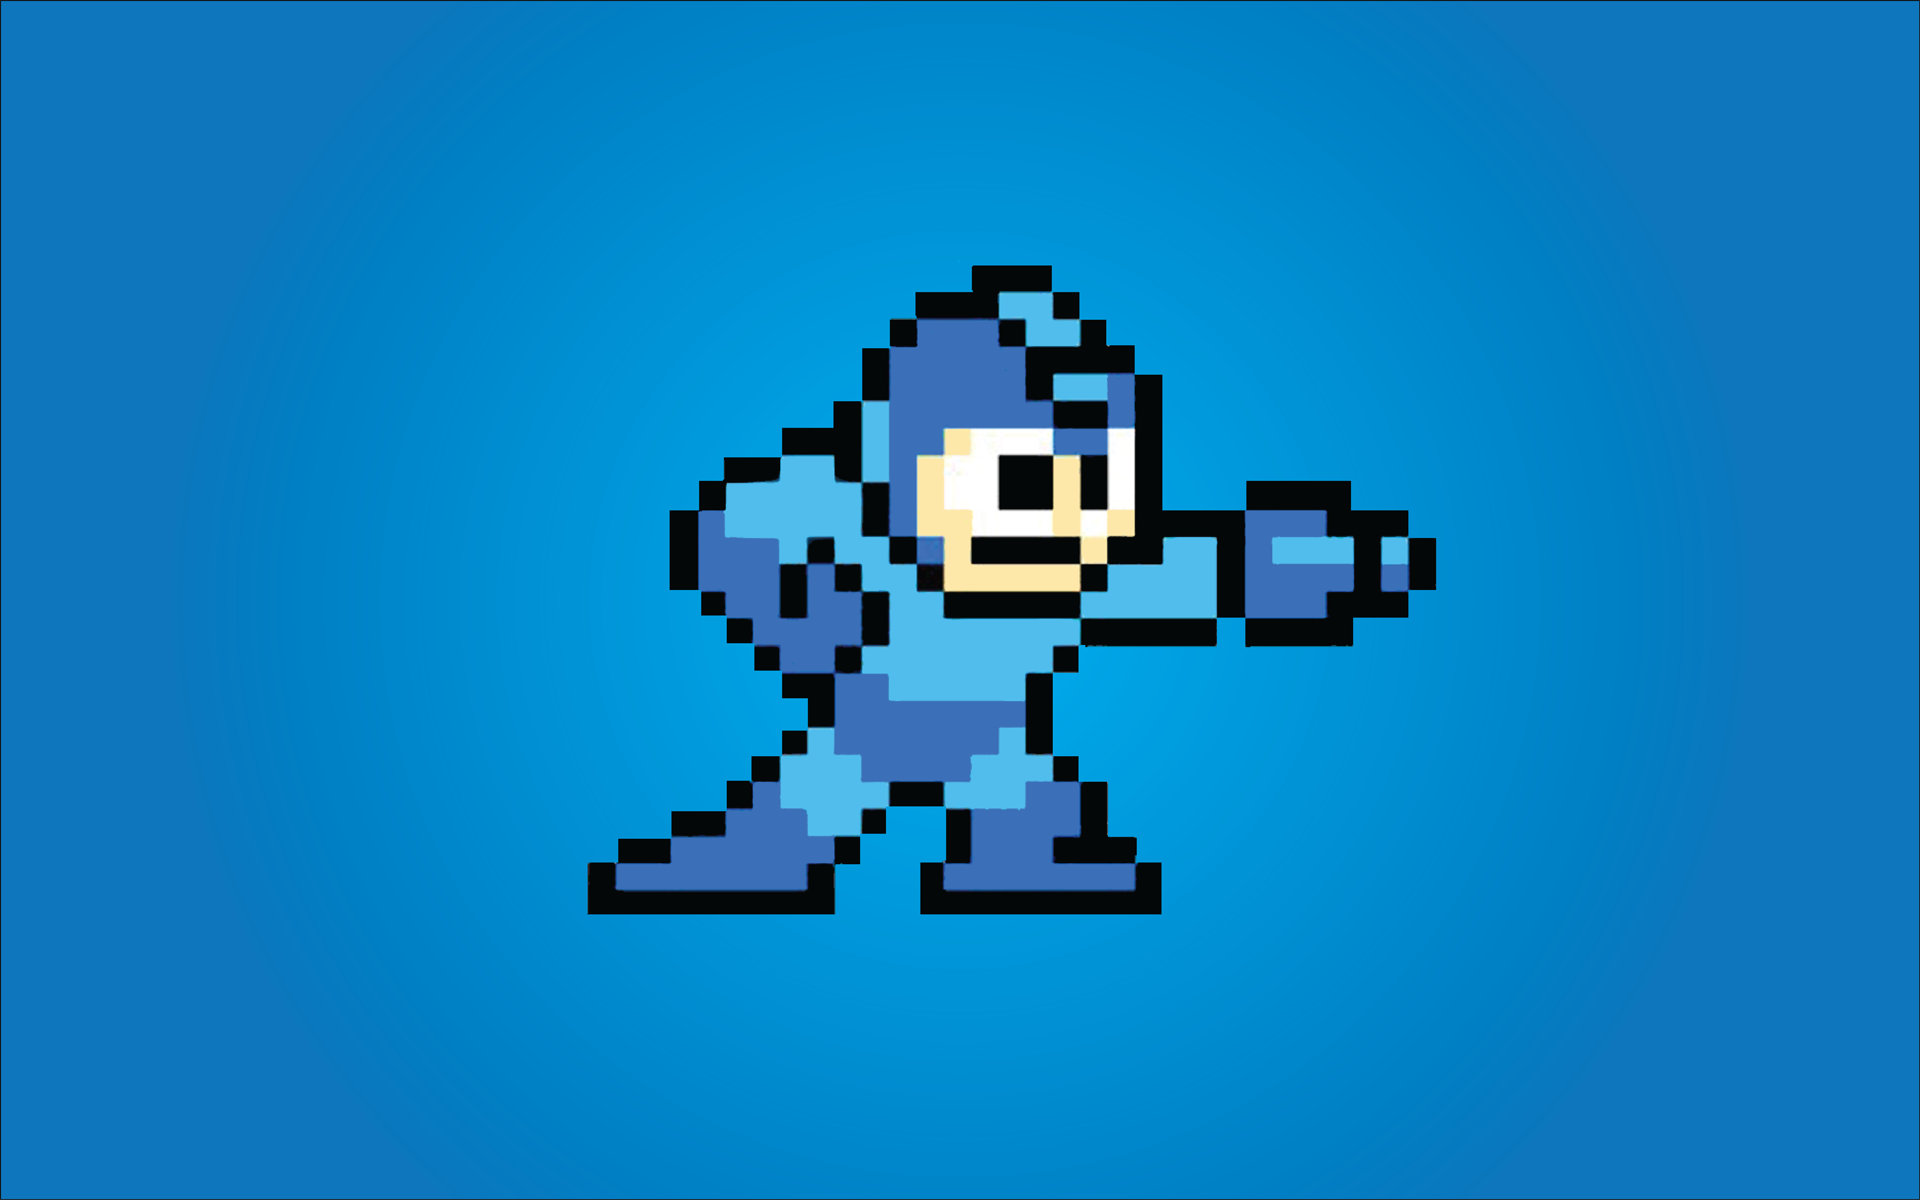 megaman wallpaper iphone wallpapersafari